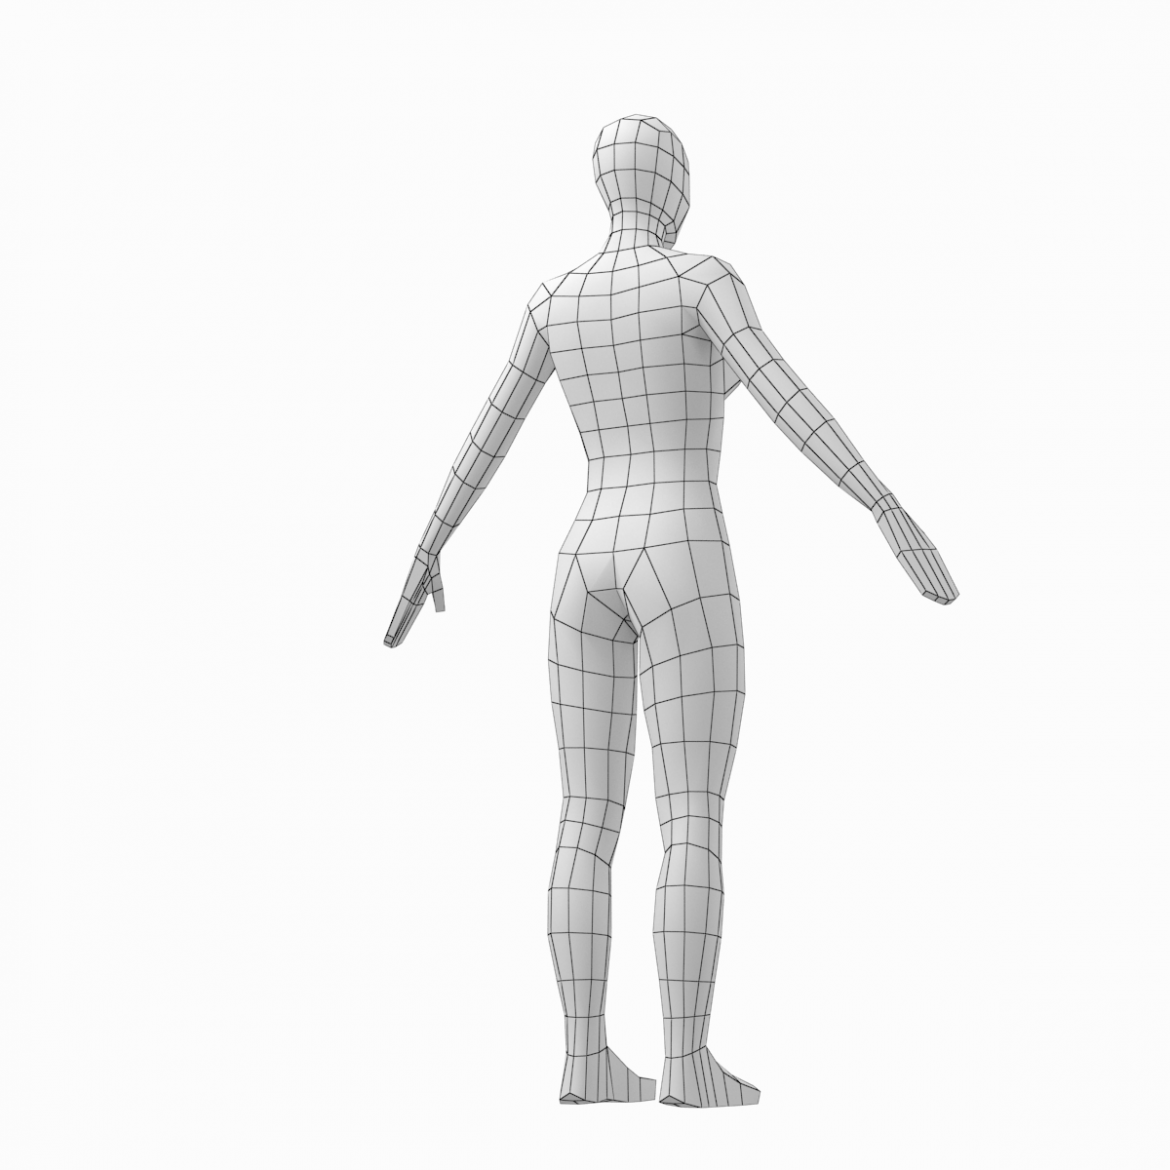 male and female low poly base mesh in a-pose 3d model 3ds max fbx c4d ma mb obj 301270